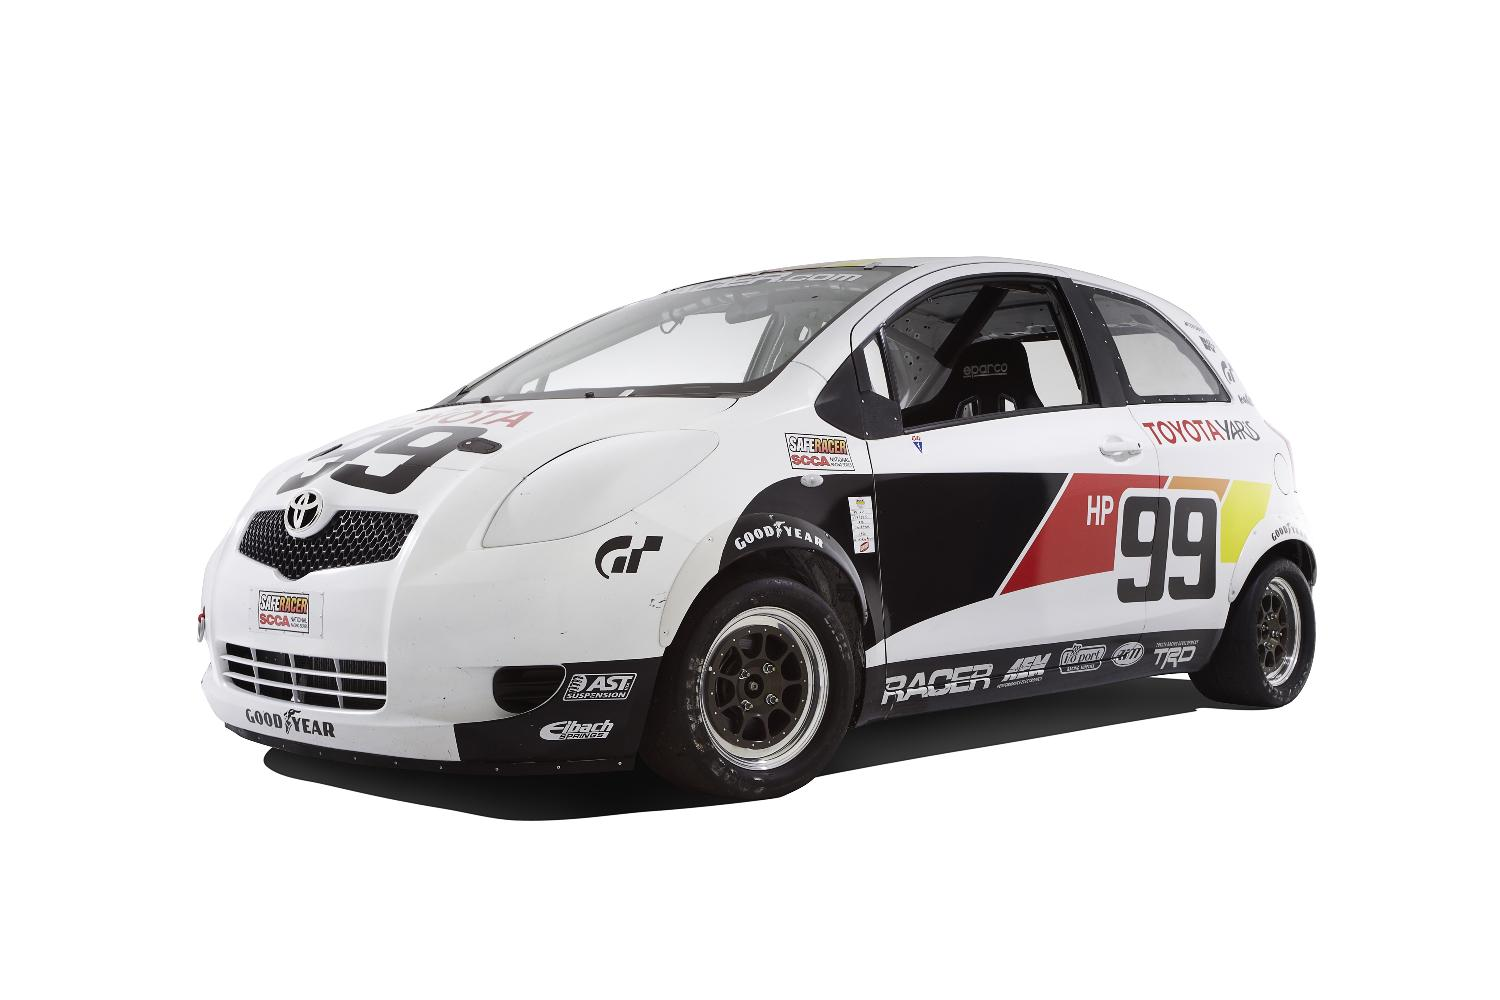 Stripped Yaris Race Car